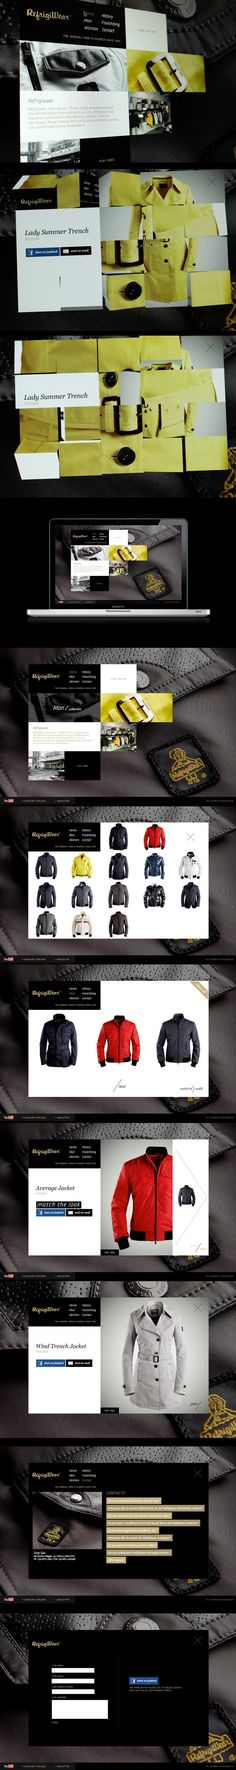 Refrigiwear Collection AW/11 - By ThinkingAbout™